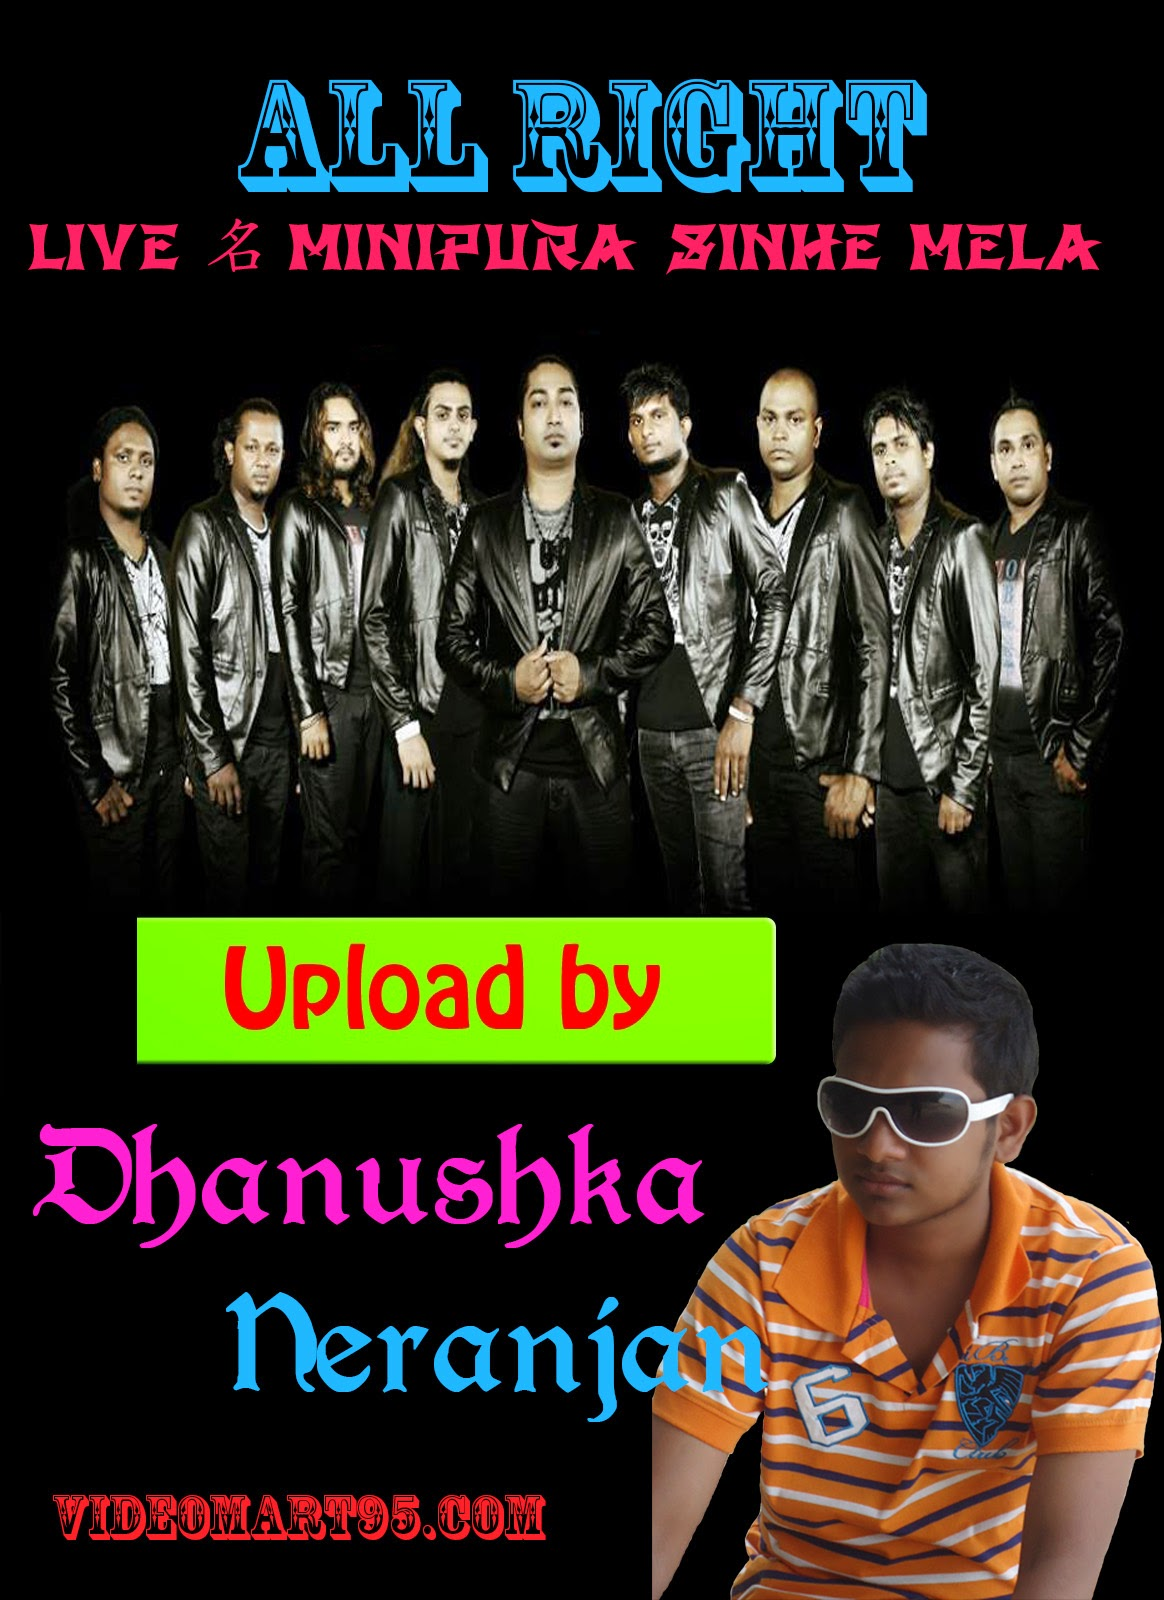 ALL RIGHT LIVE @ MINIPURA SINHE MELA 2014